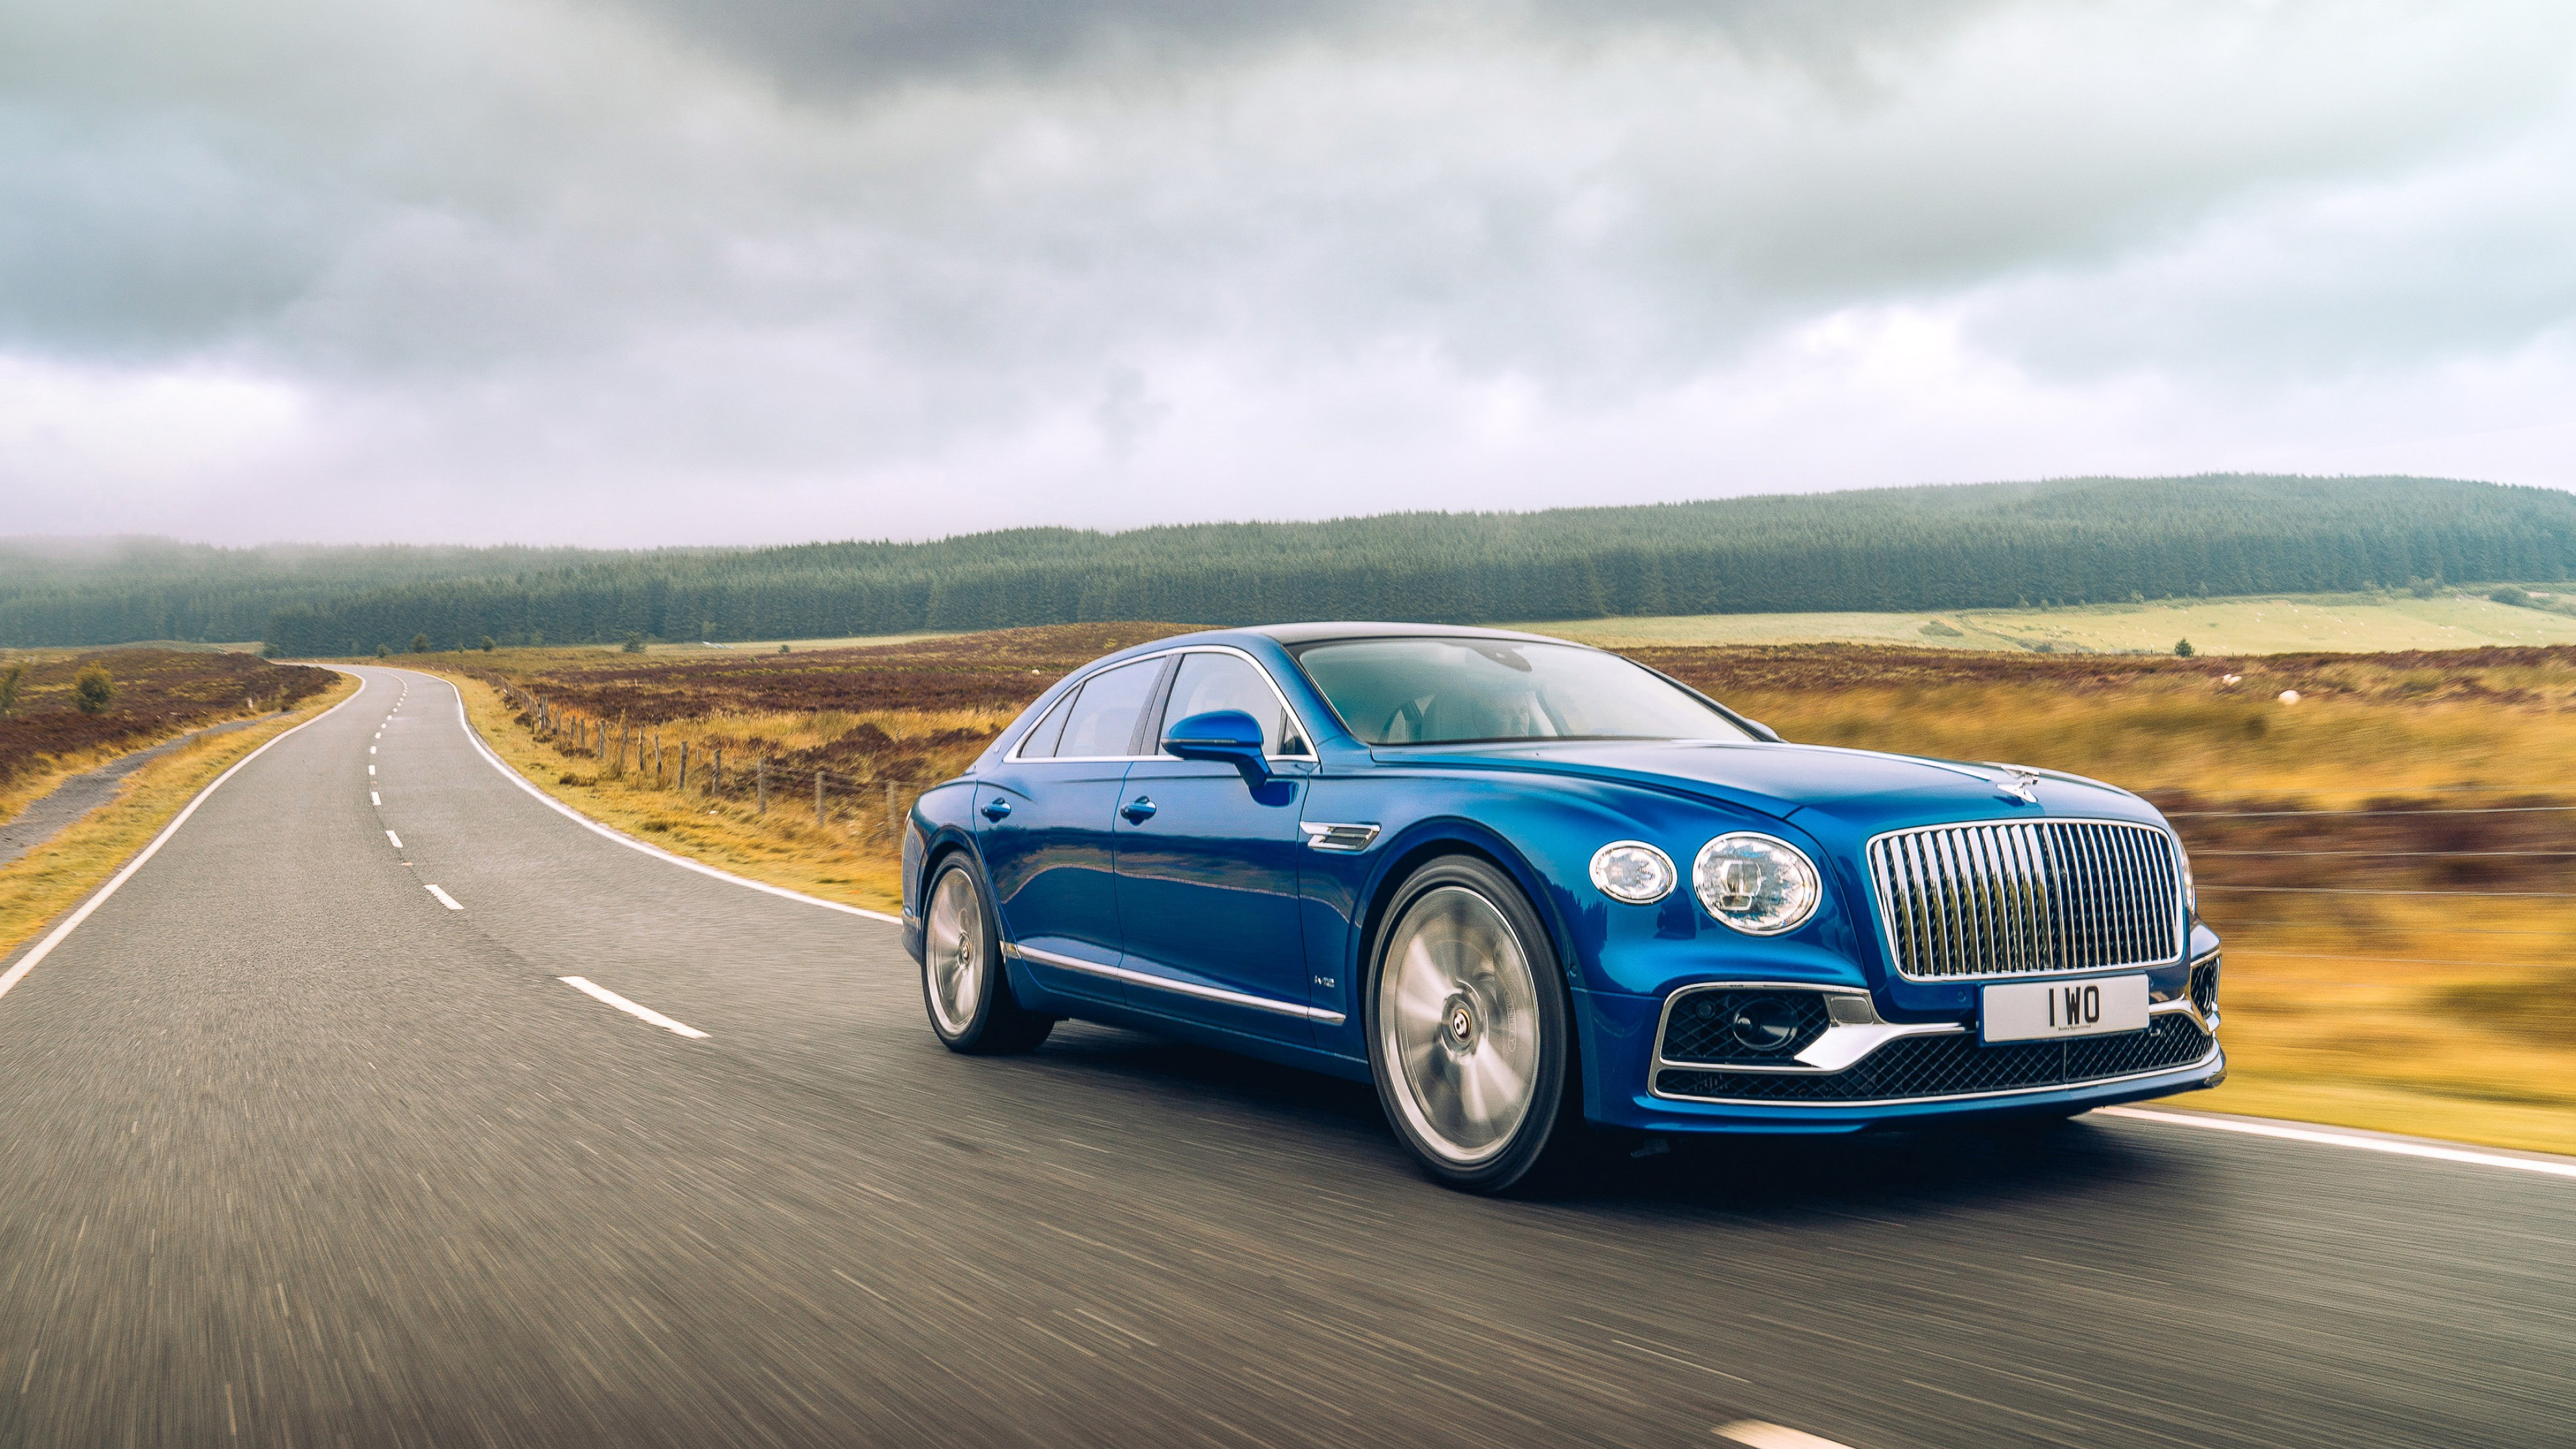 Wallpaper Bentley Flying Spur Luxury Cars 2020 Cars 4k